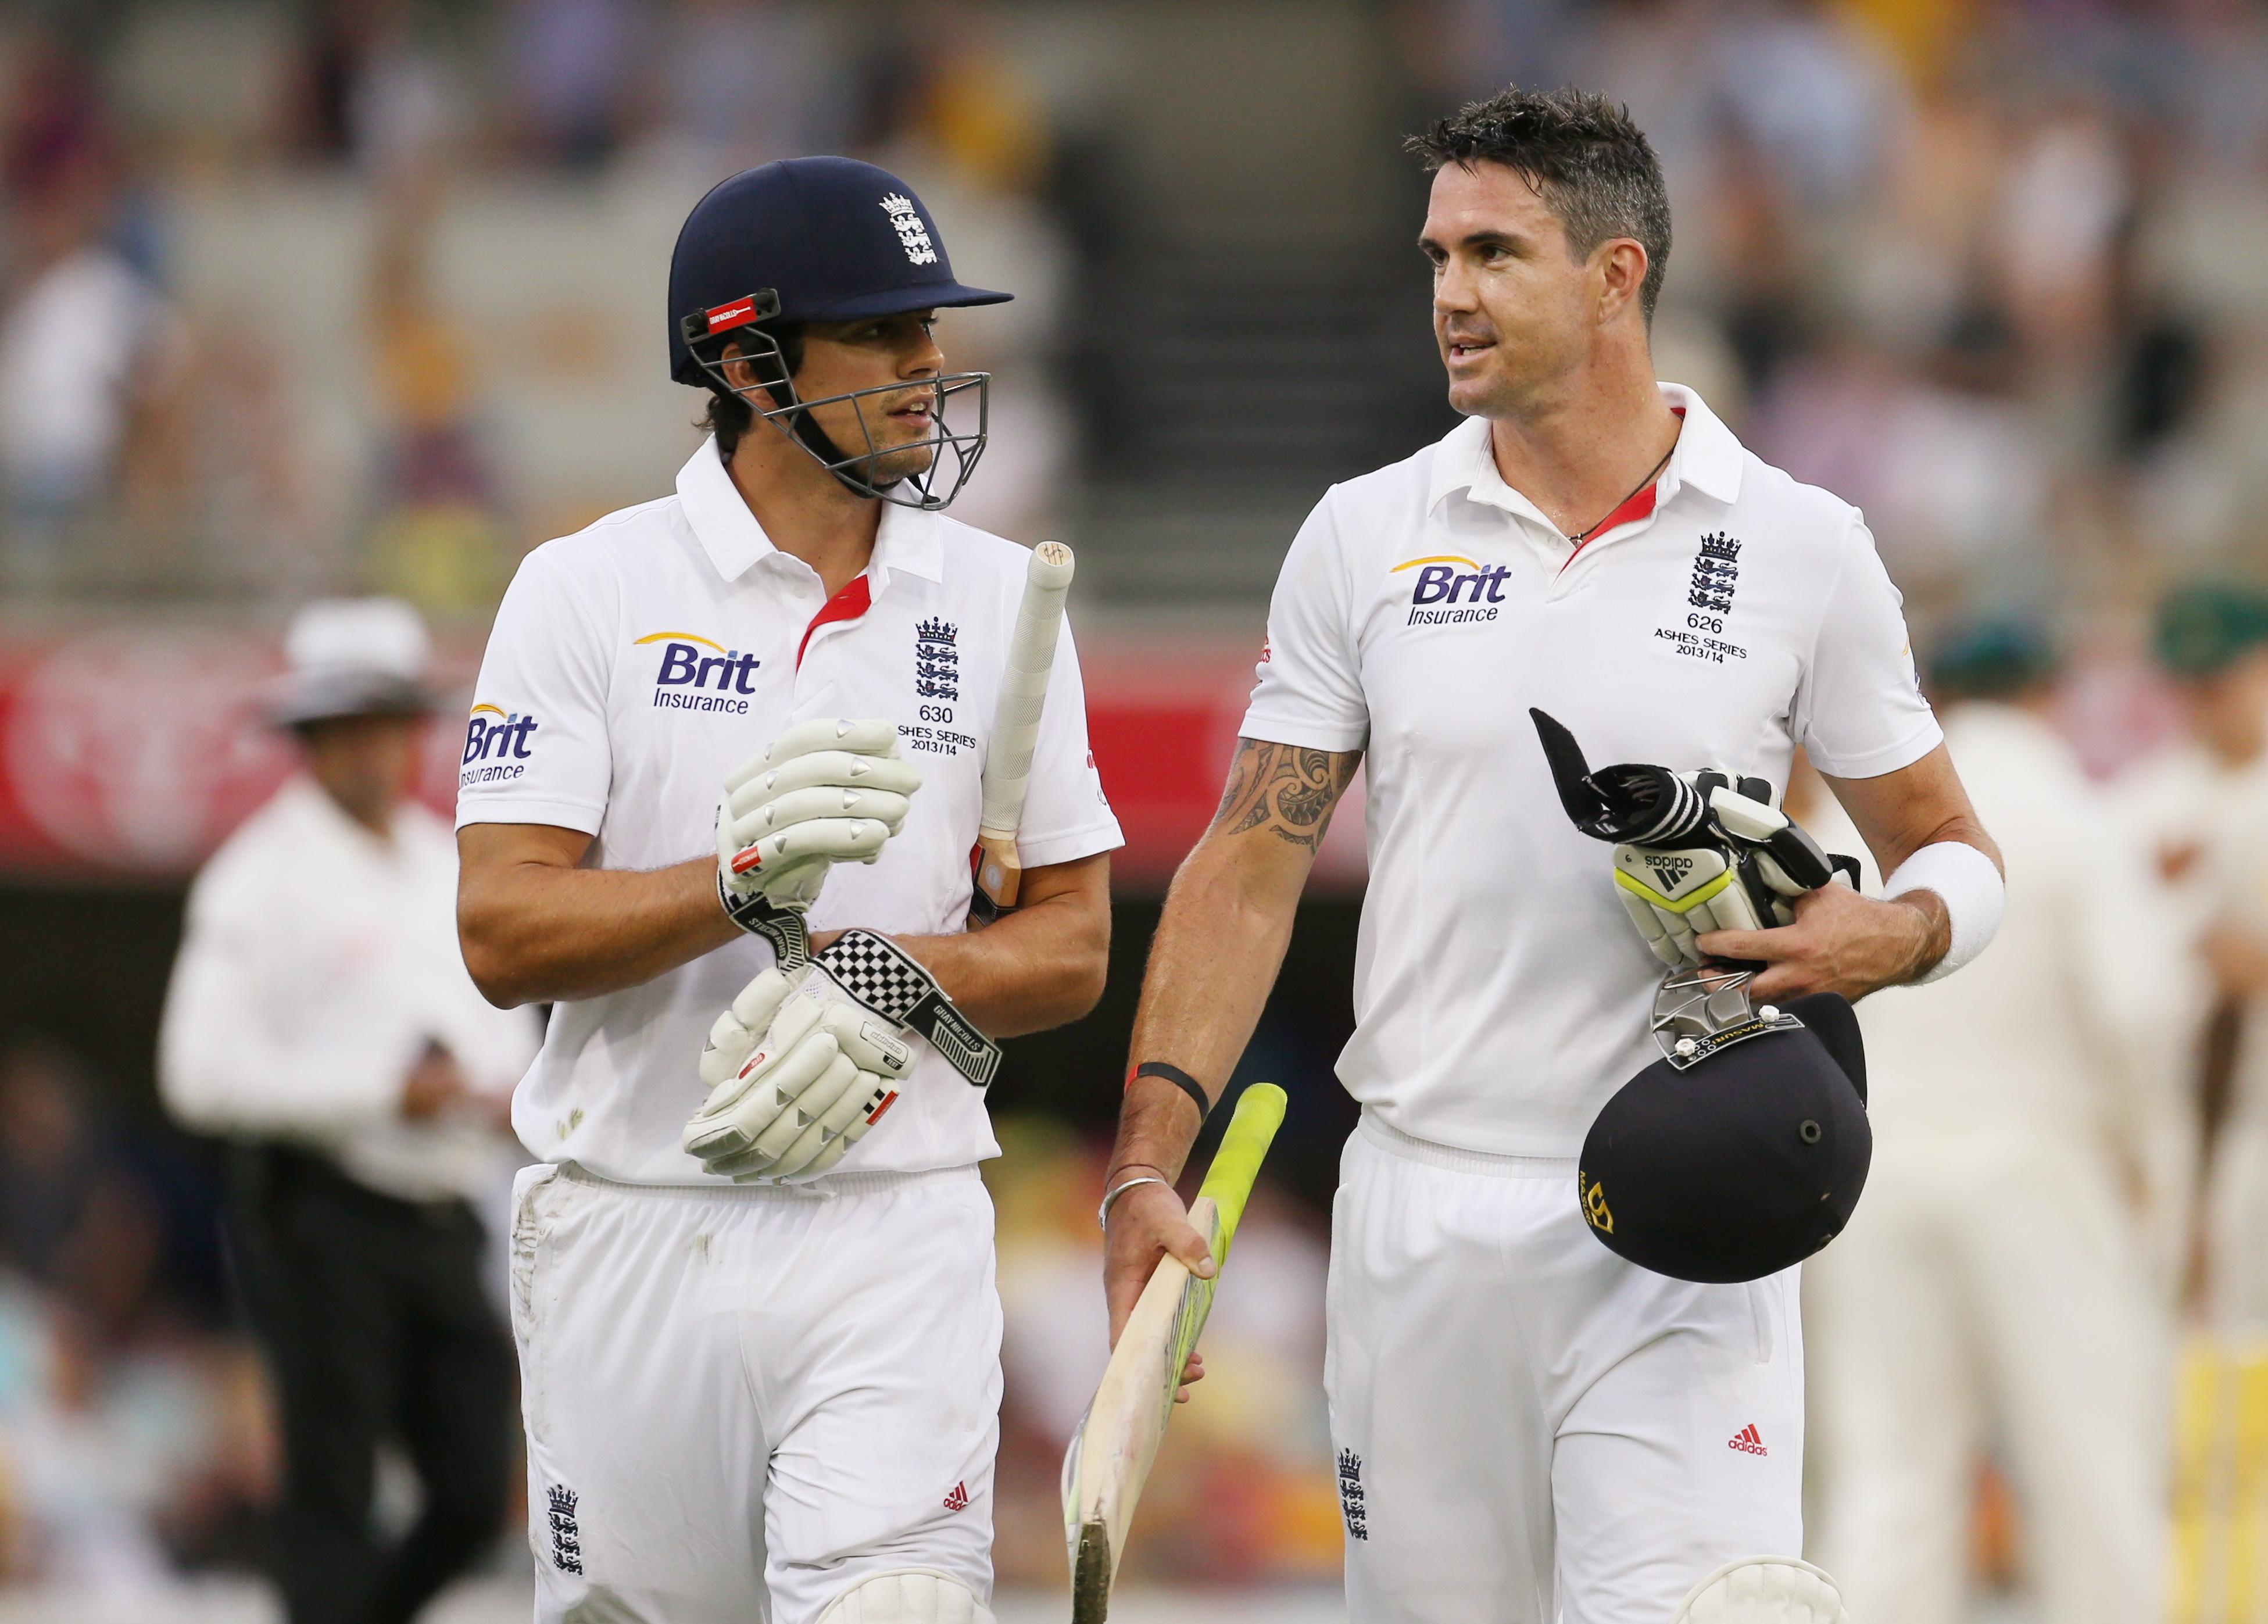 Alastair Cook and Kevin Pietersen have not spoken since they fell out in 2014